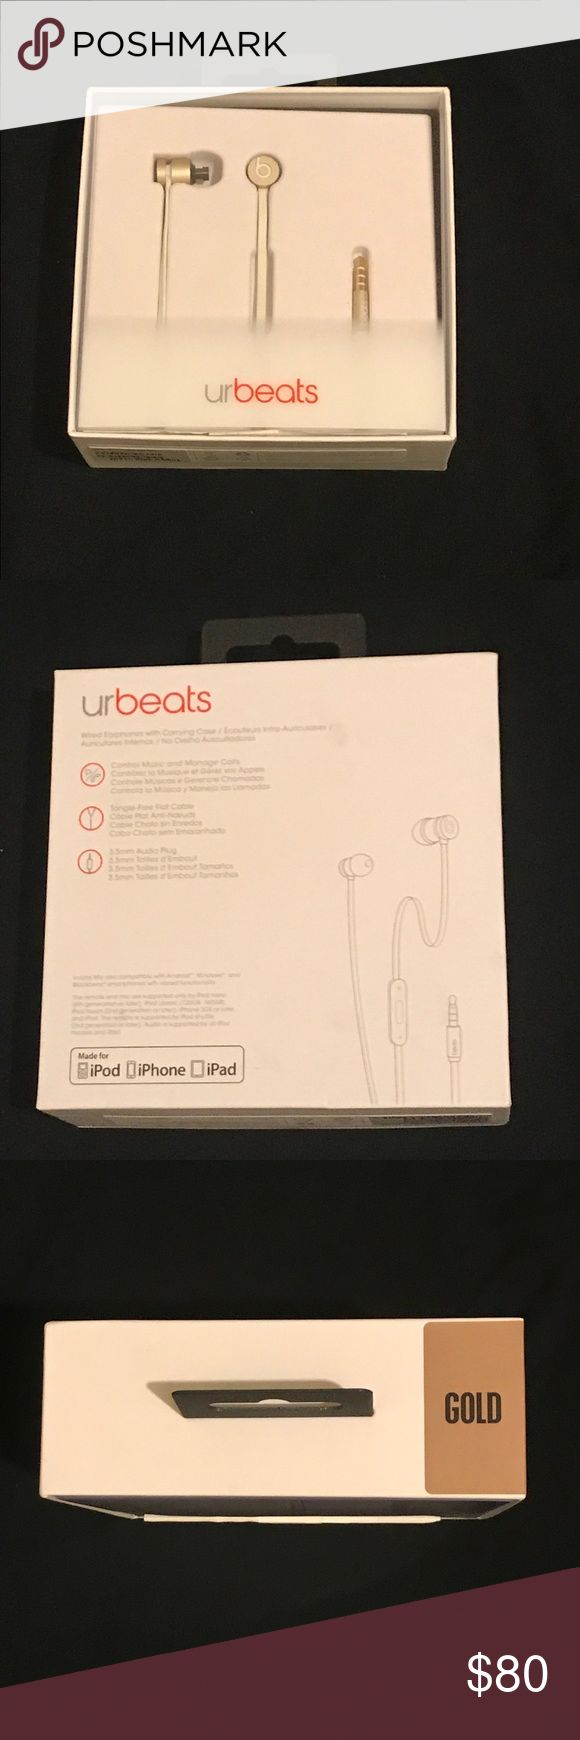 Beats By Dre Headphones (Unlimited) Gold/White Like New With Box, 3 replacement Ear Buds, Carrying Pouch Also Included Beat By Dre Other